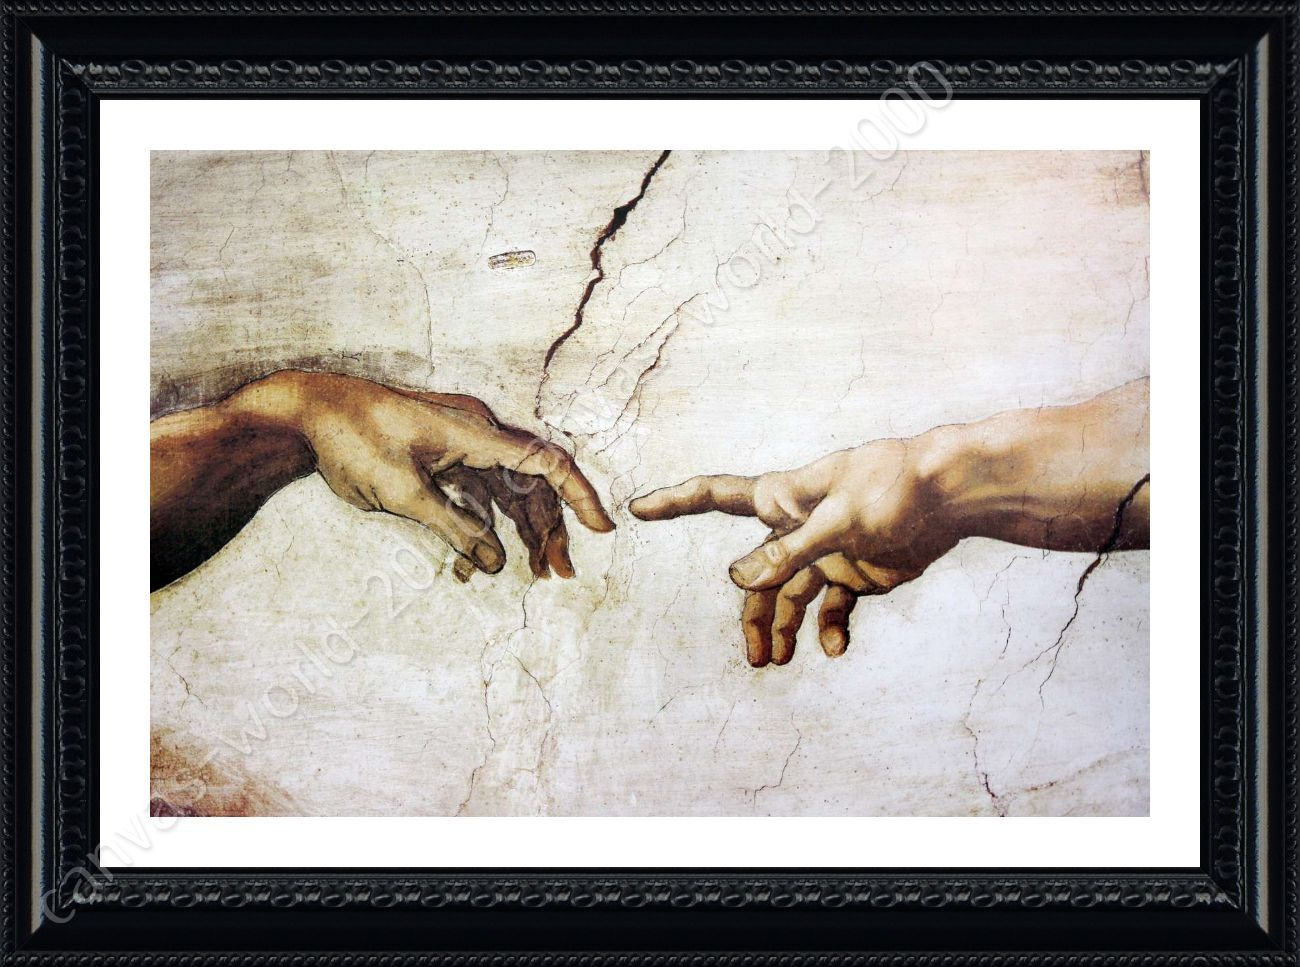 The Creation Of Man by Michelangelo   Framed canvas   Wall art ...